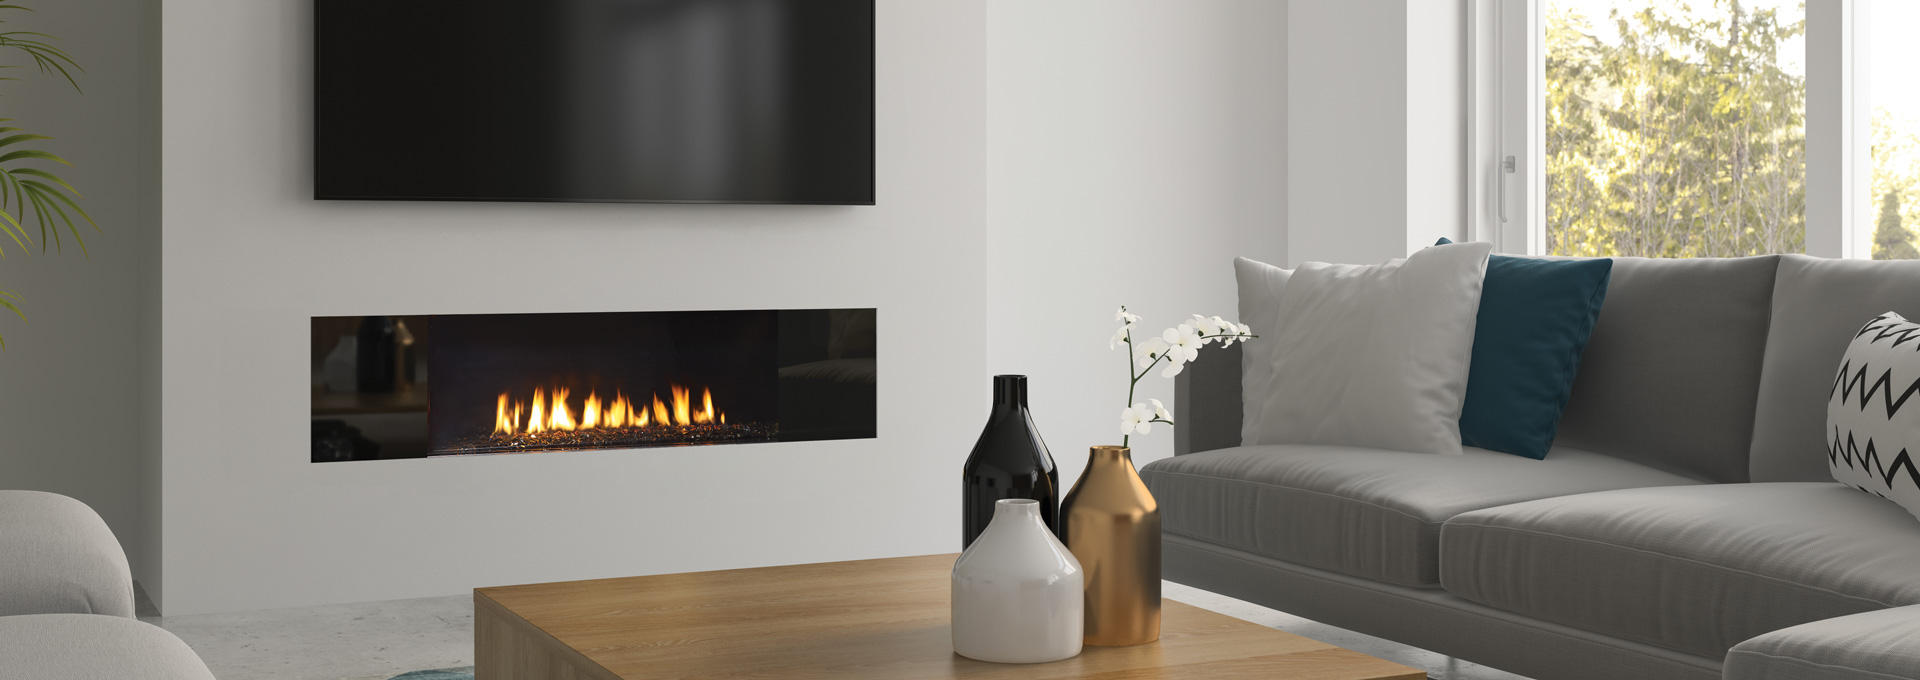 Modern Fireplace Images Regency City Series New York View 40 Modern Gas Fireplace